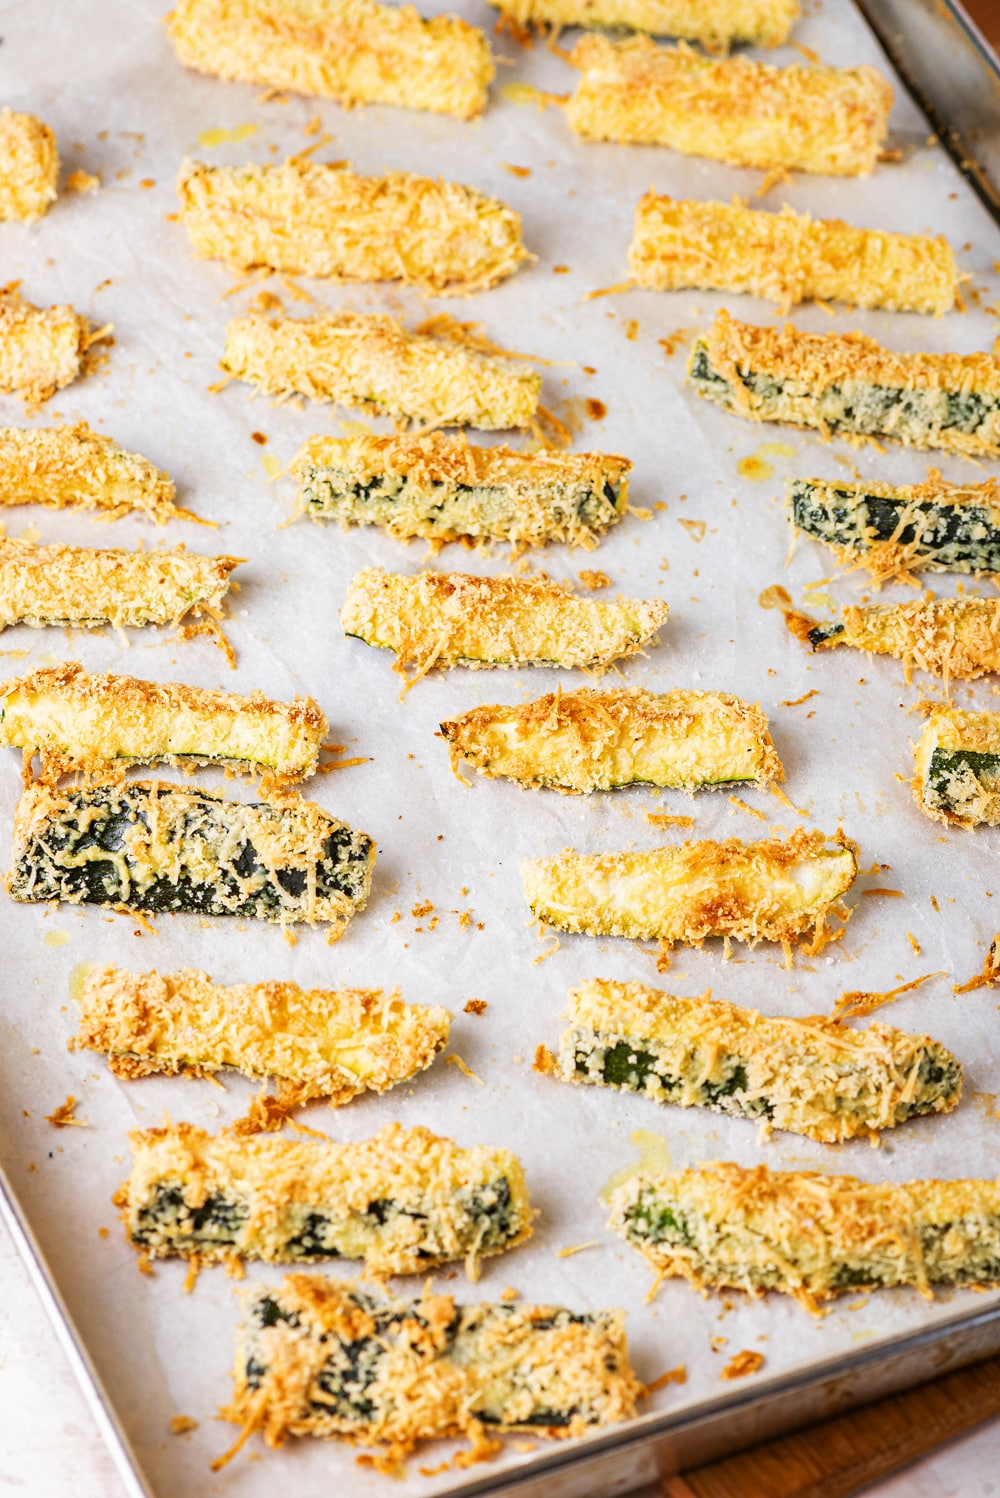 Slices of breaded and cooked zucchini on a baking sheet lined with parchment paper.